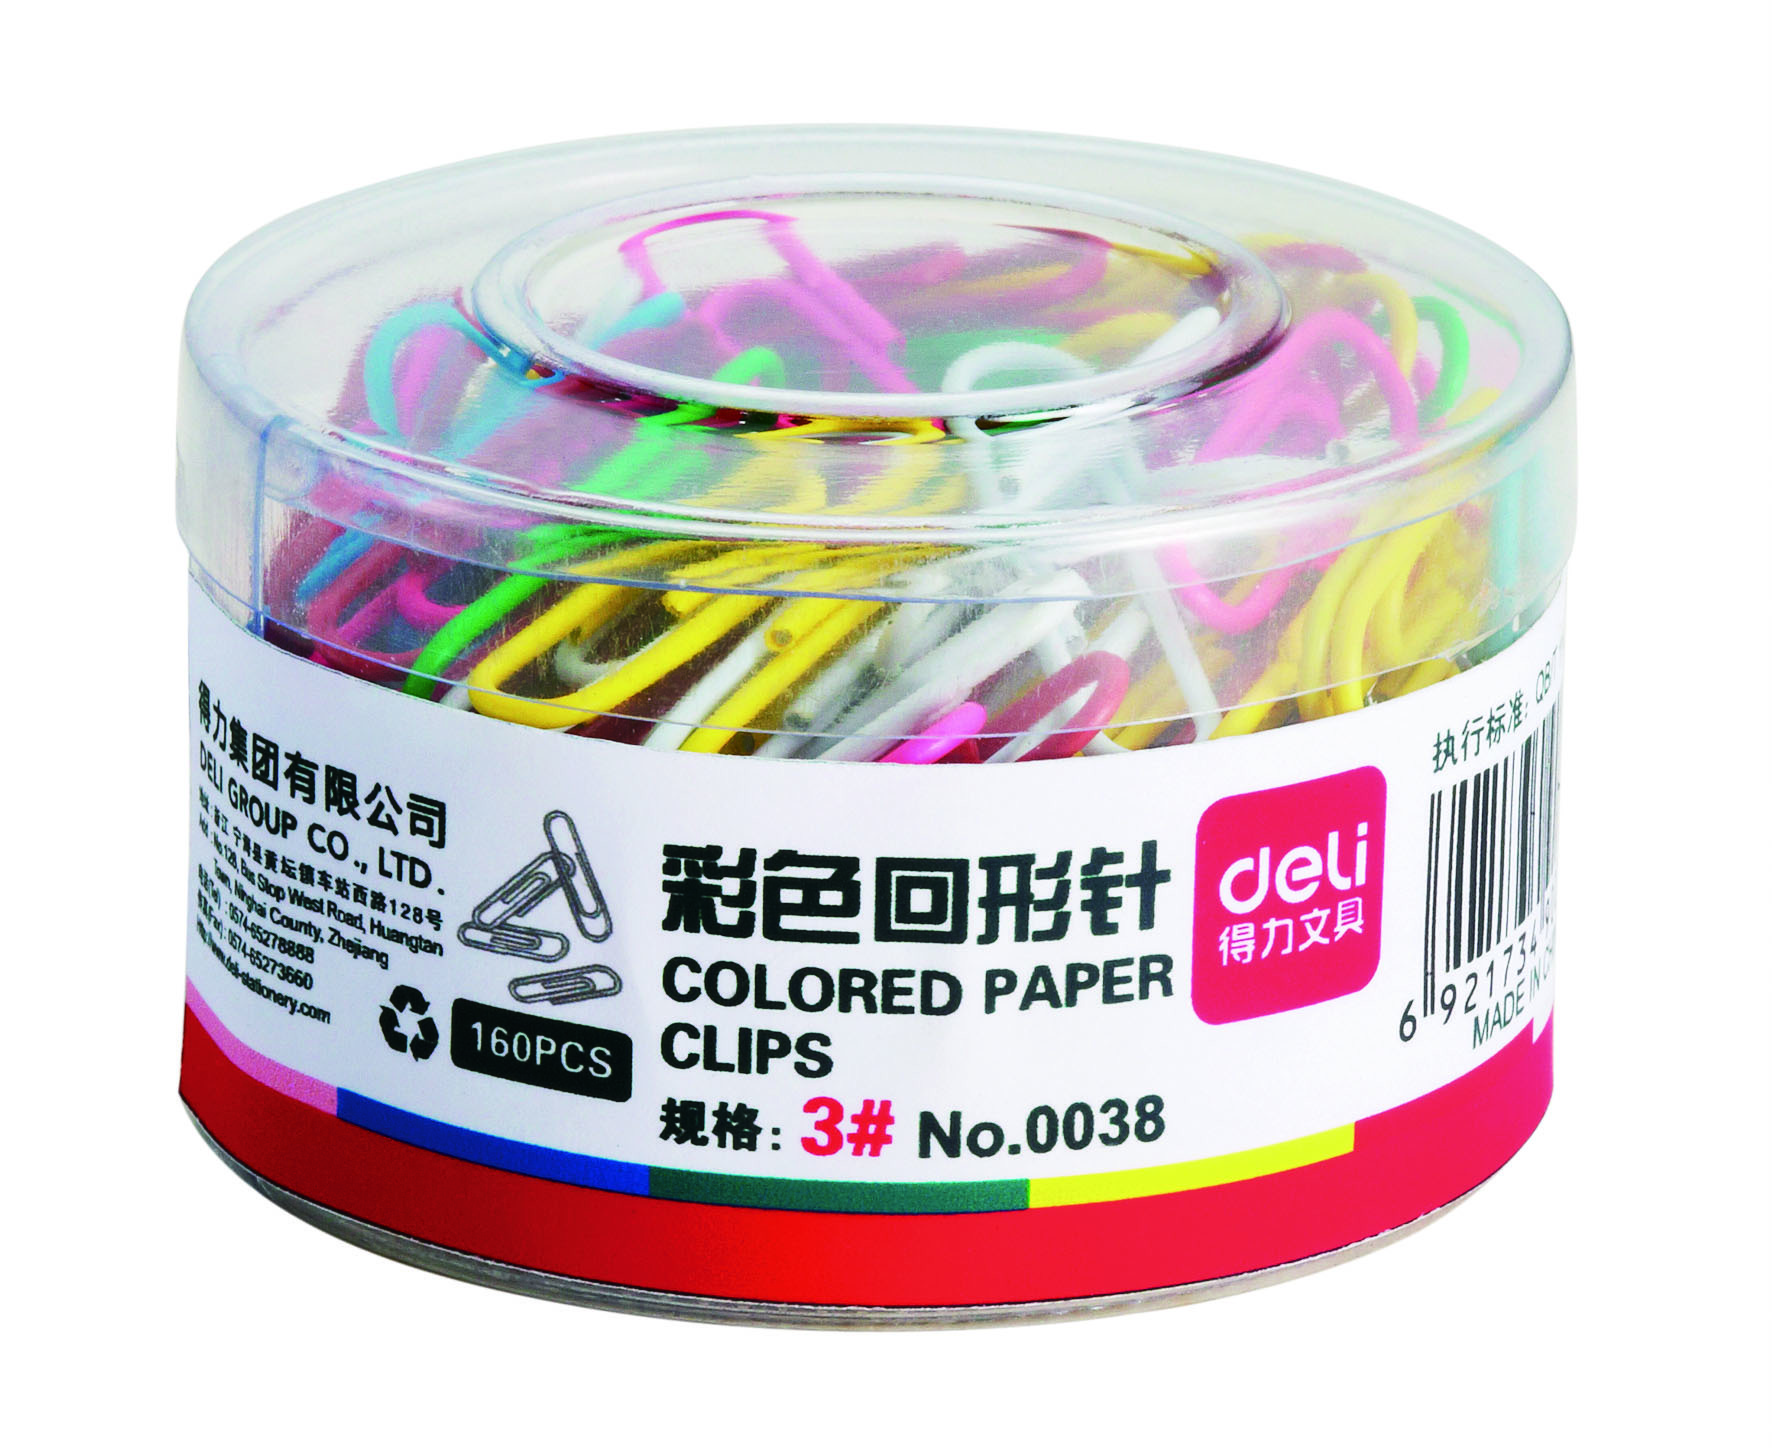 Deli paperclip colored paper clips deli deli 0038 paperclip paperclip 29mm color paperclip office supplies